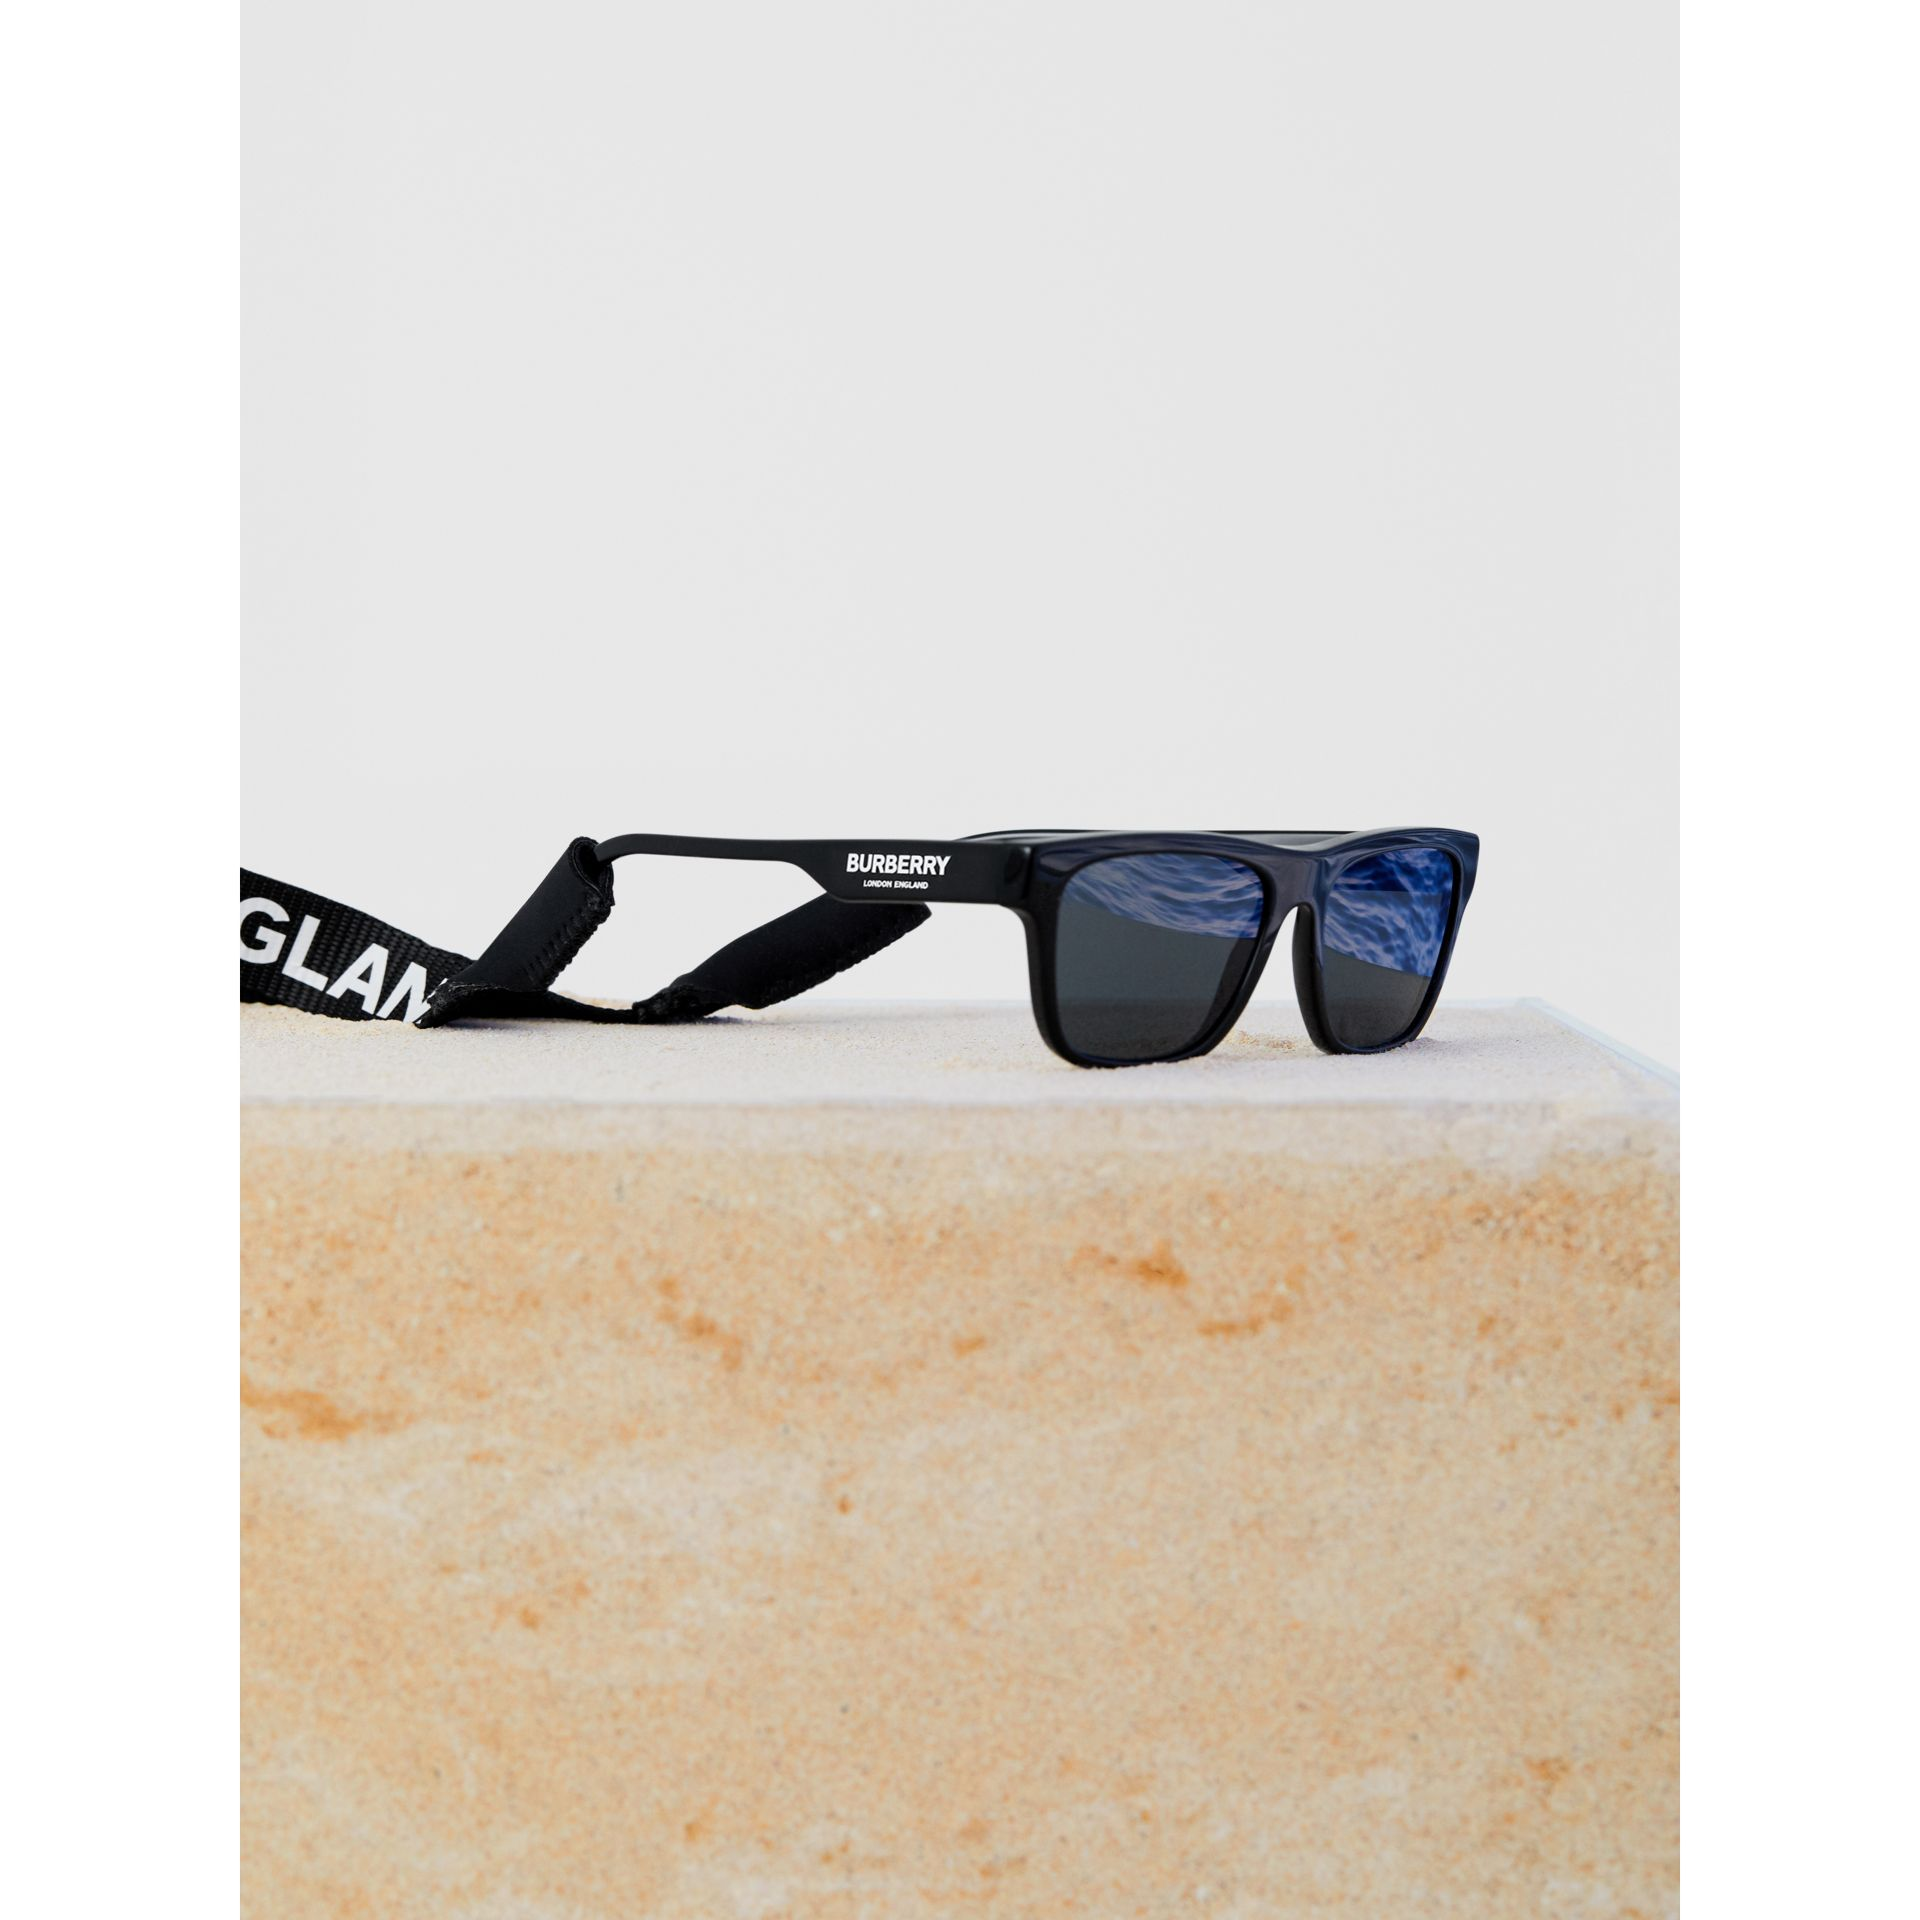 Logo Print Eyewear Lanyard in Black | Burberry - gallery image 5